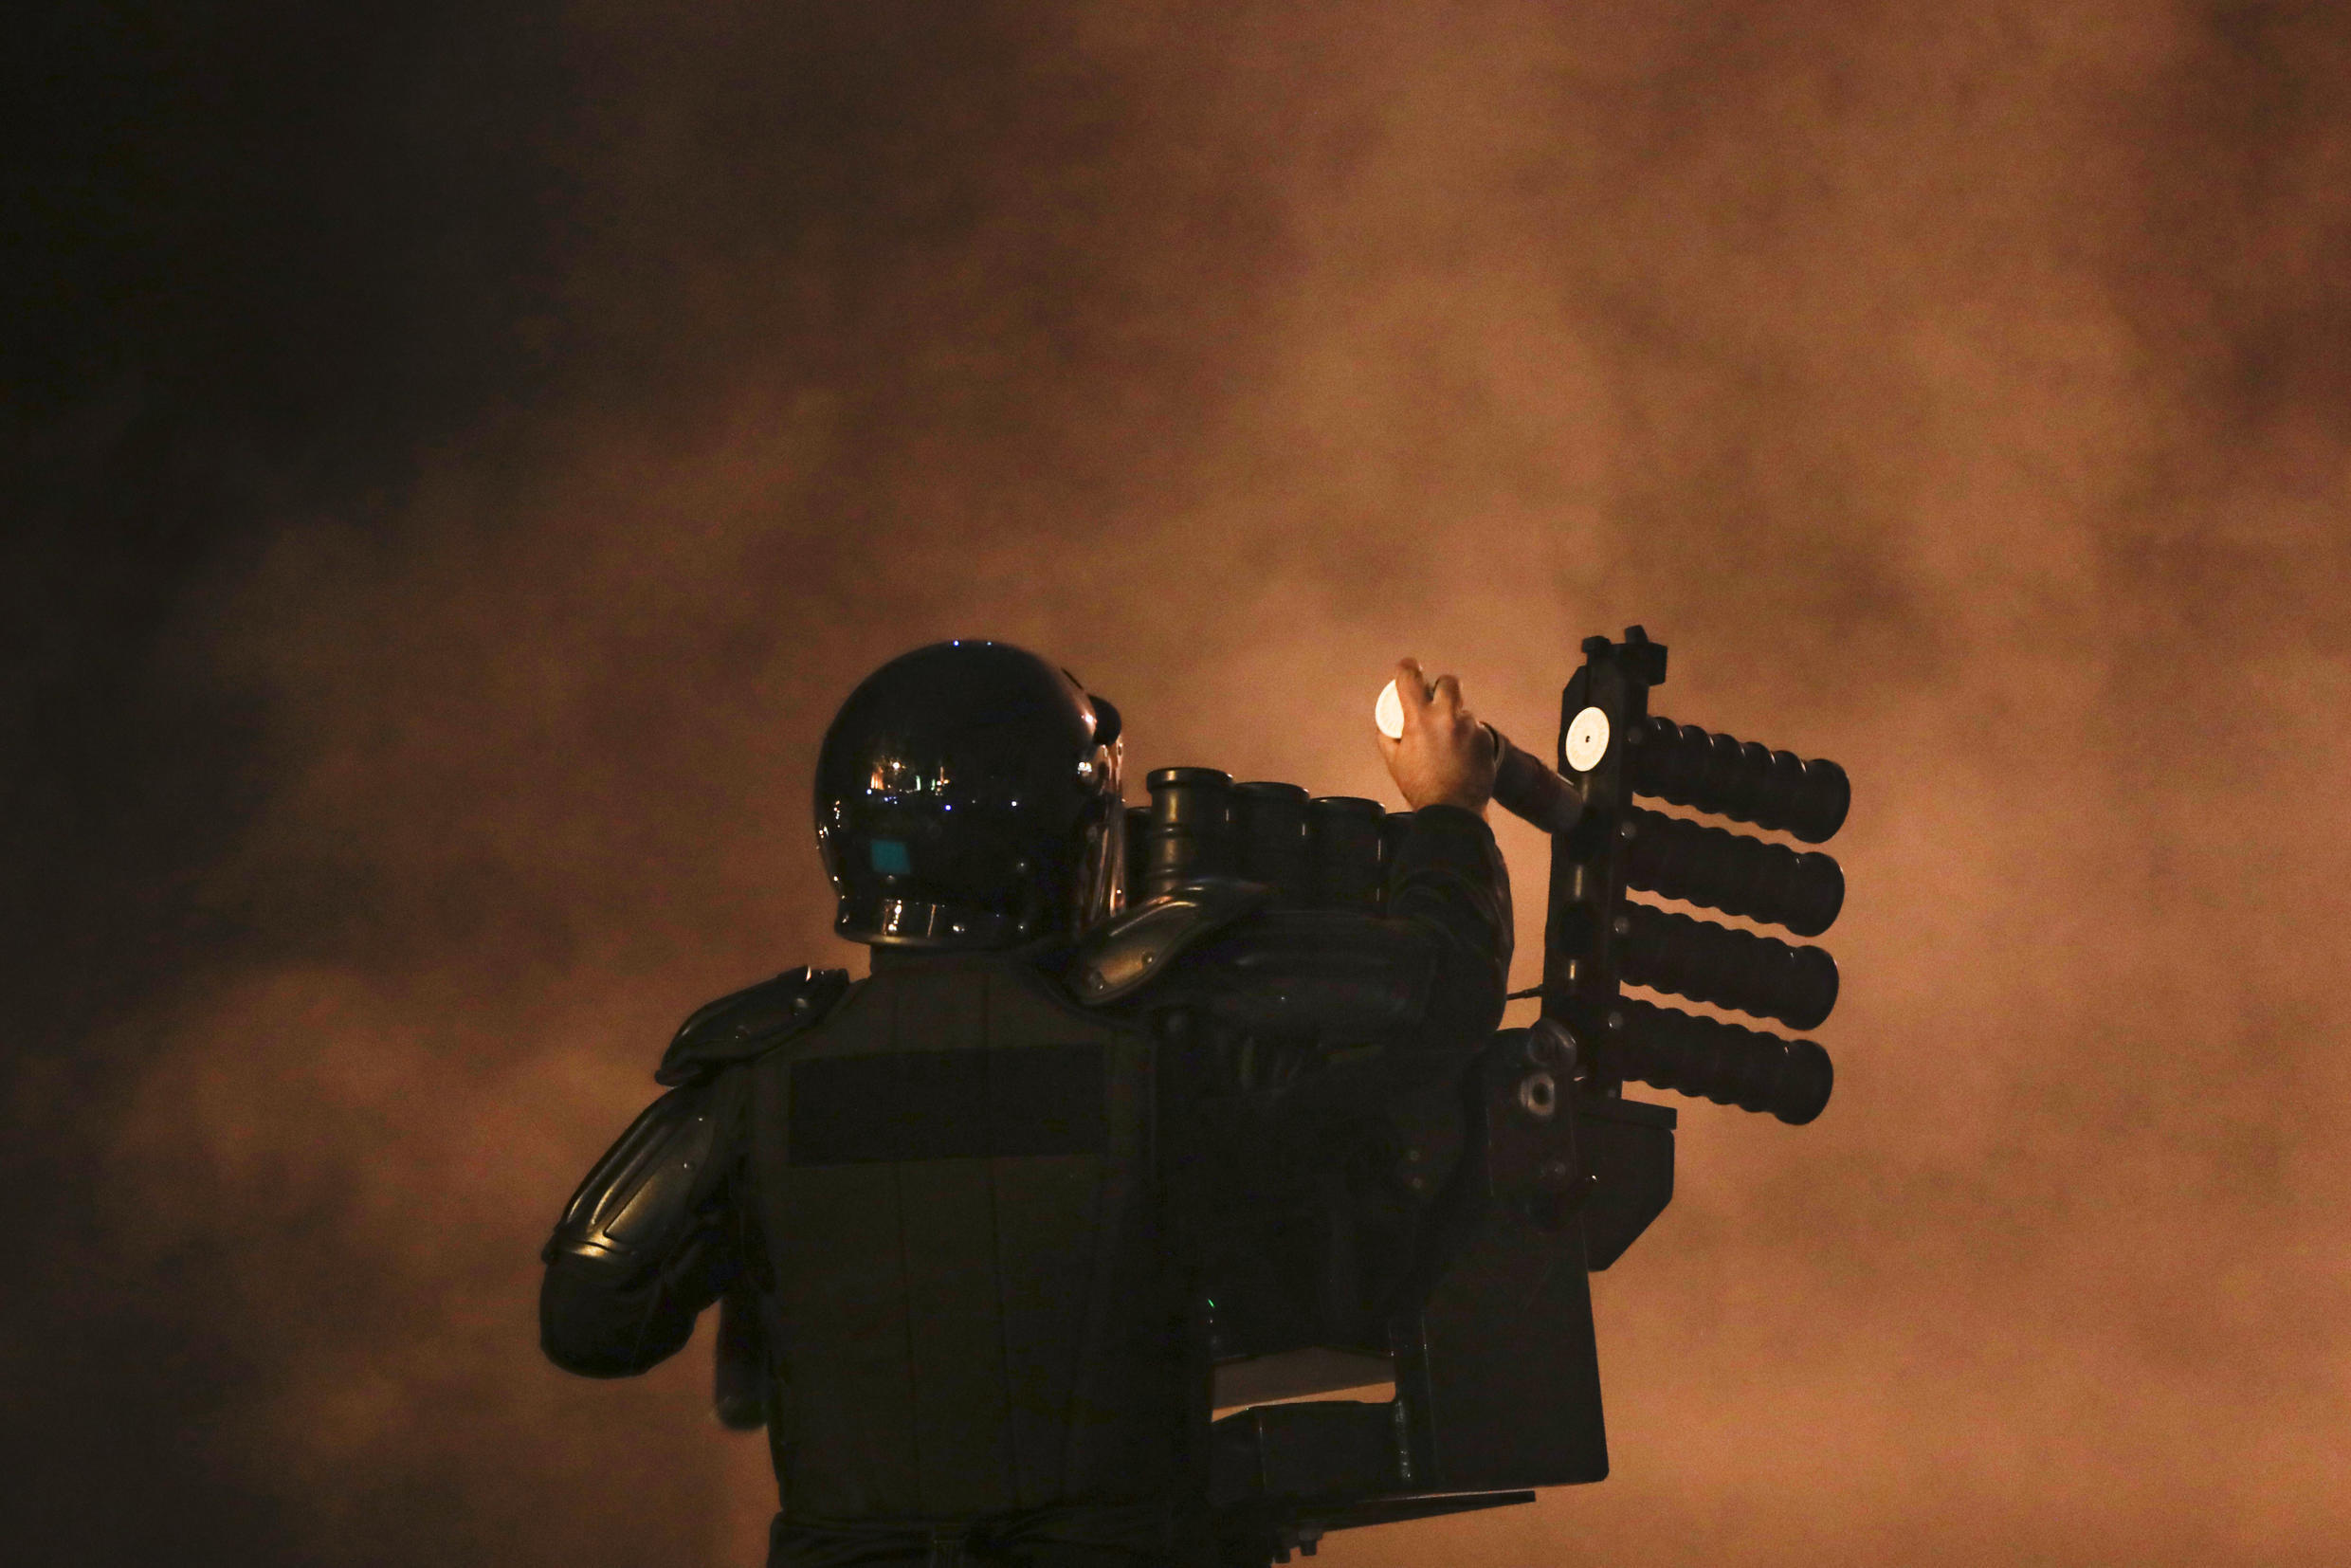 Lebanese riot policeman loads tear gas canisters into a launcher during clashes with protesters Jan. 18, 2020.